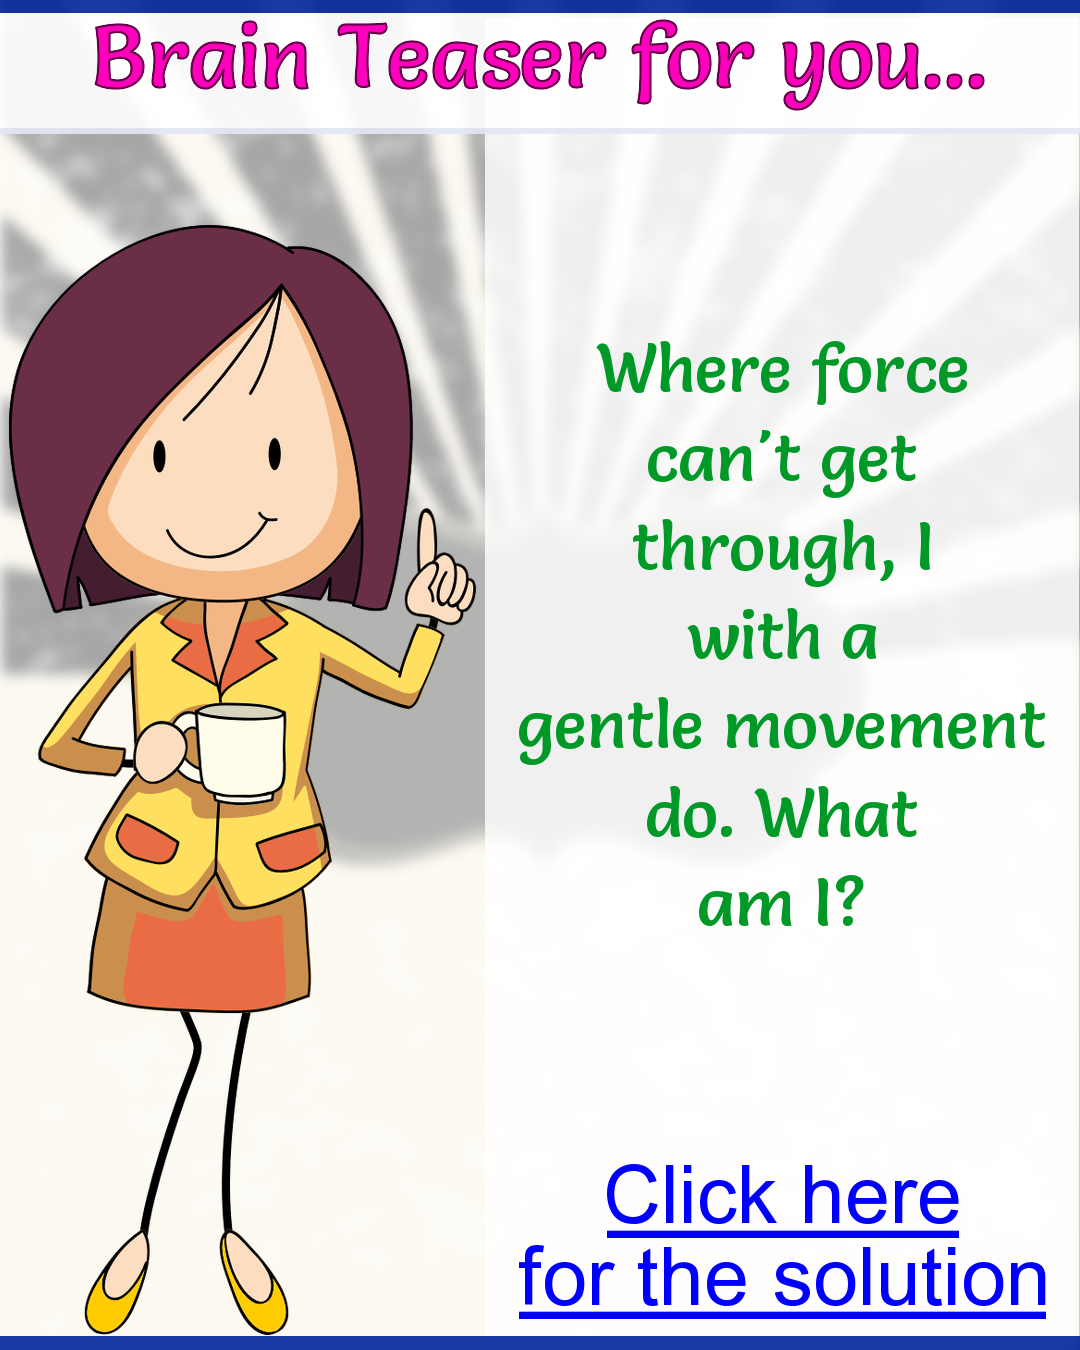 What am I? moving gently in 2020 Fun riddles with